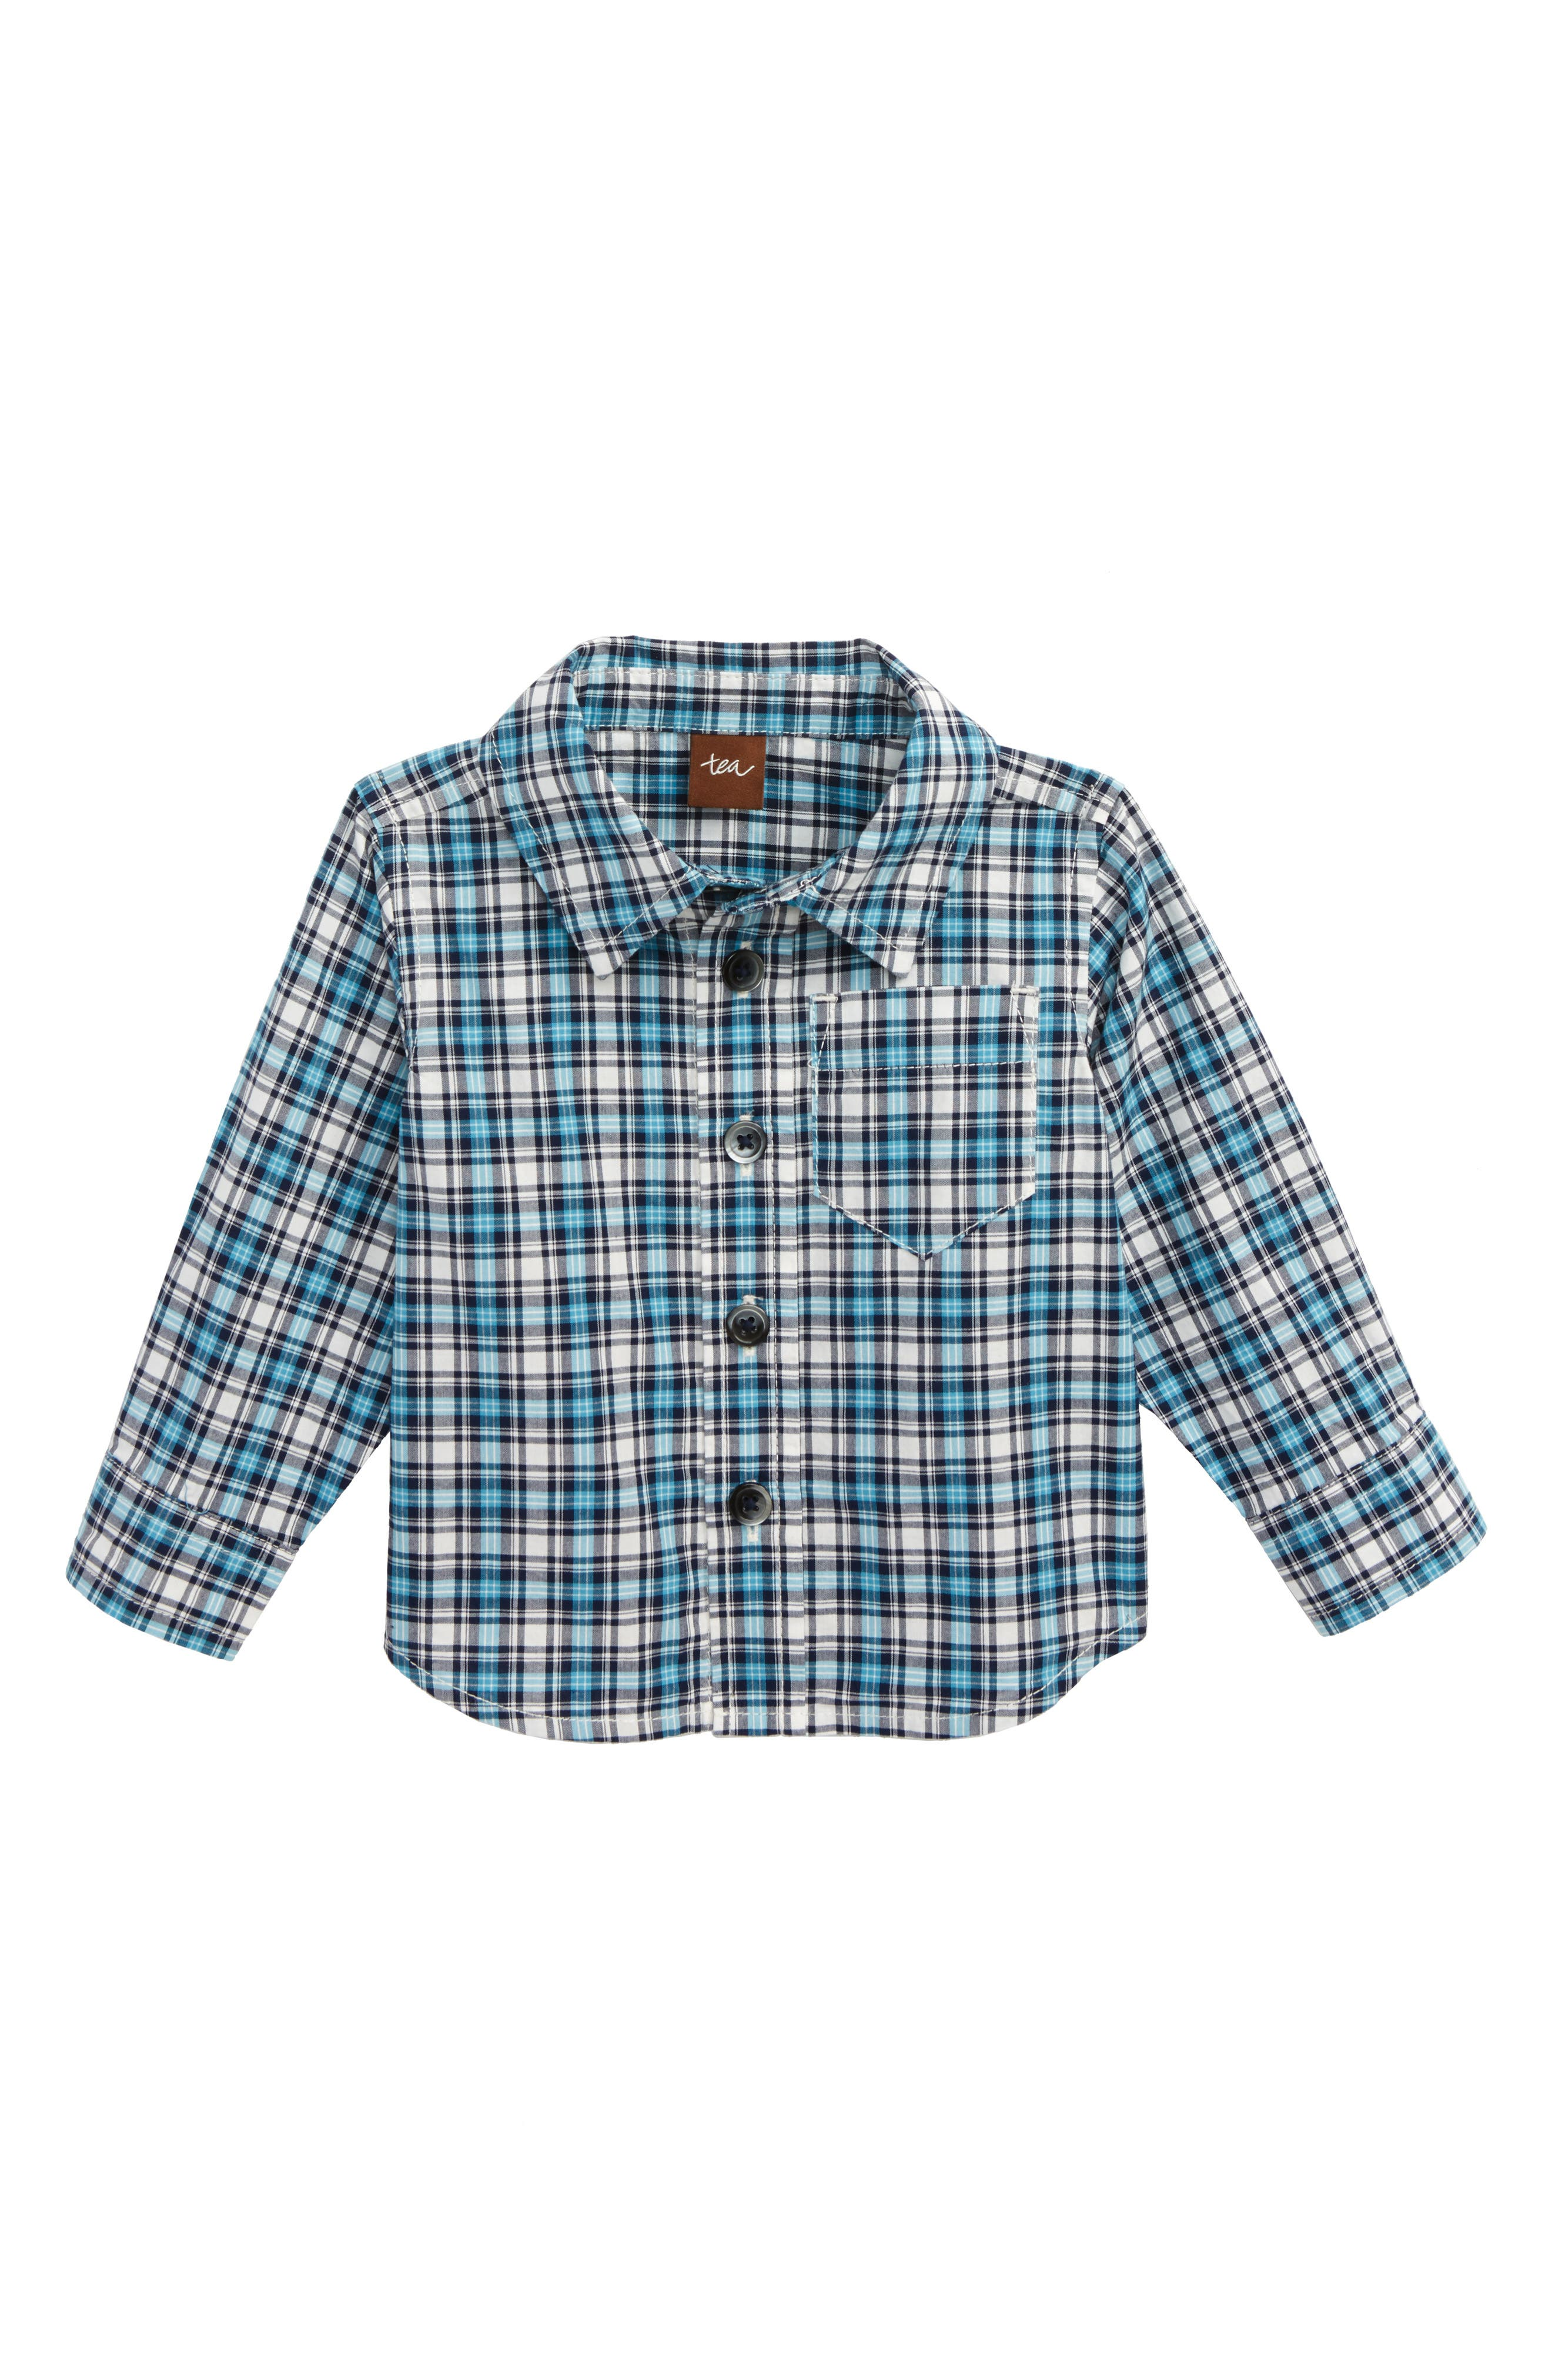 Tea Collection Heath Plaid Woven Shirt (Baby Boys)